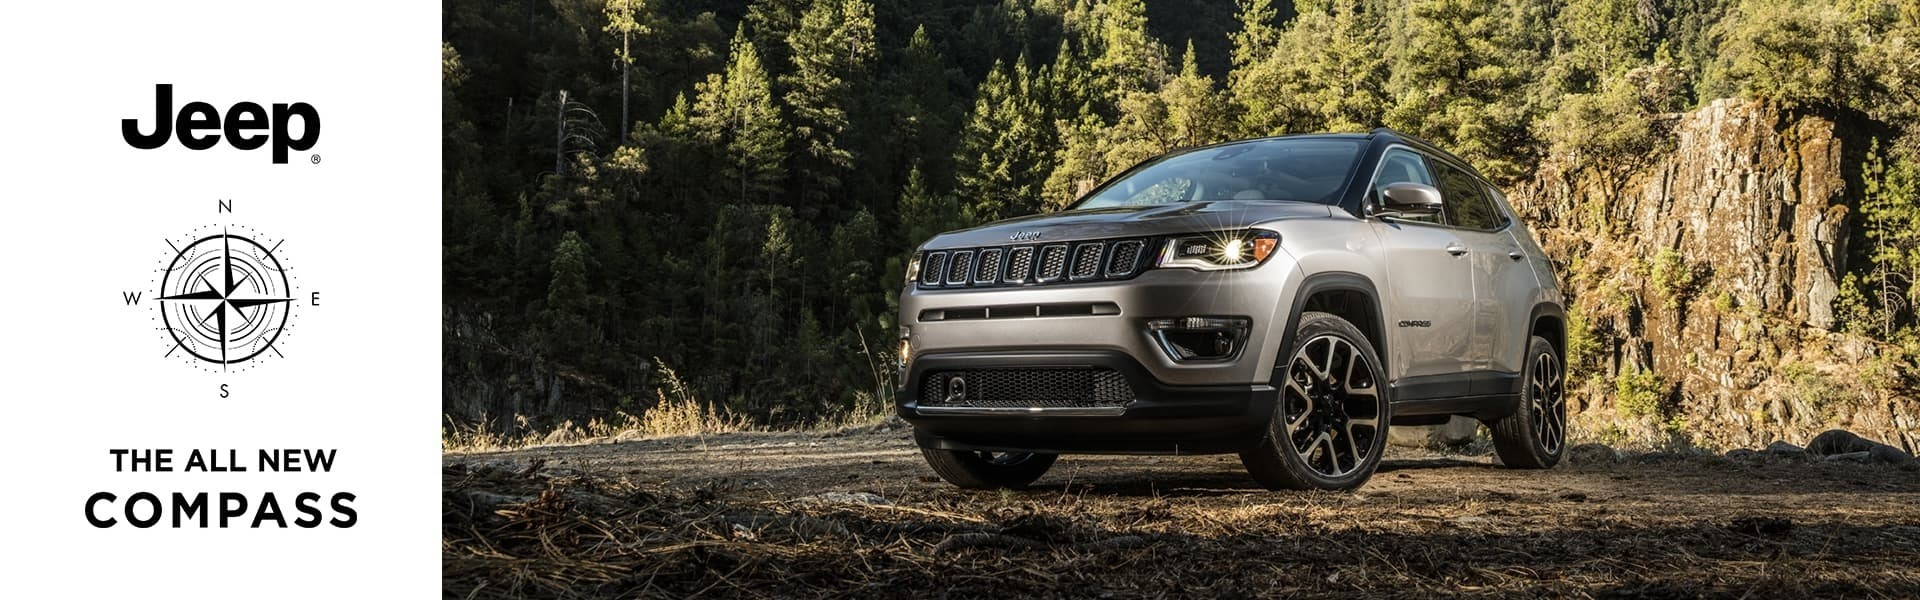 Jeep The All New Compass